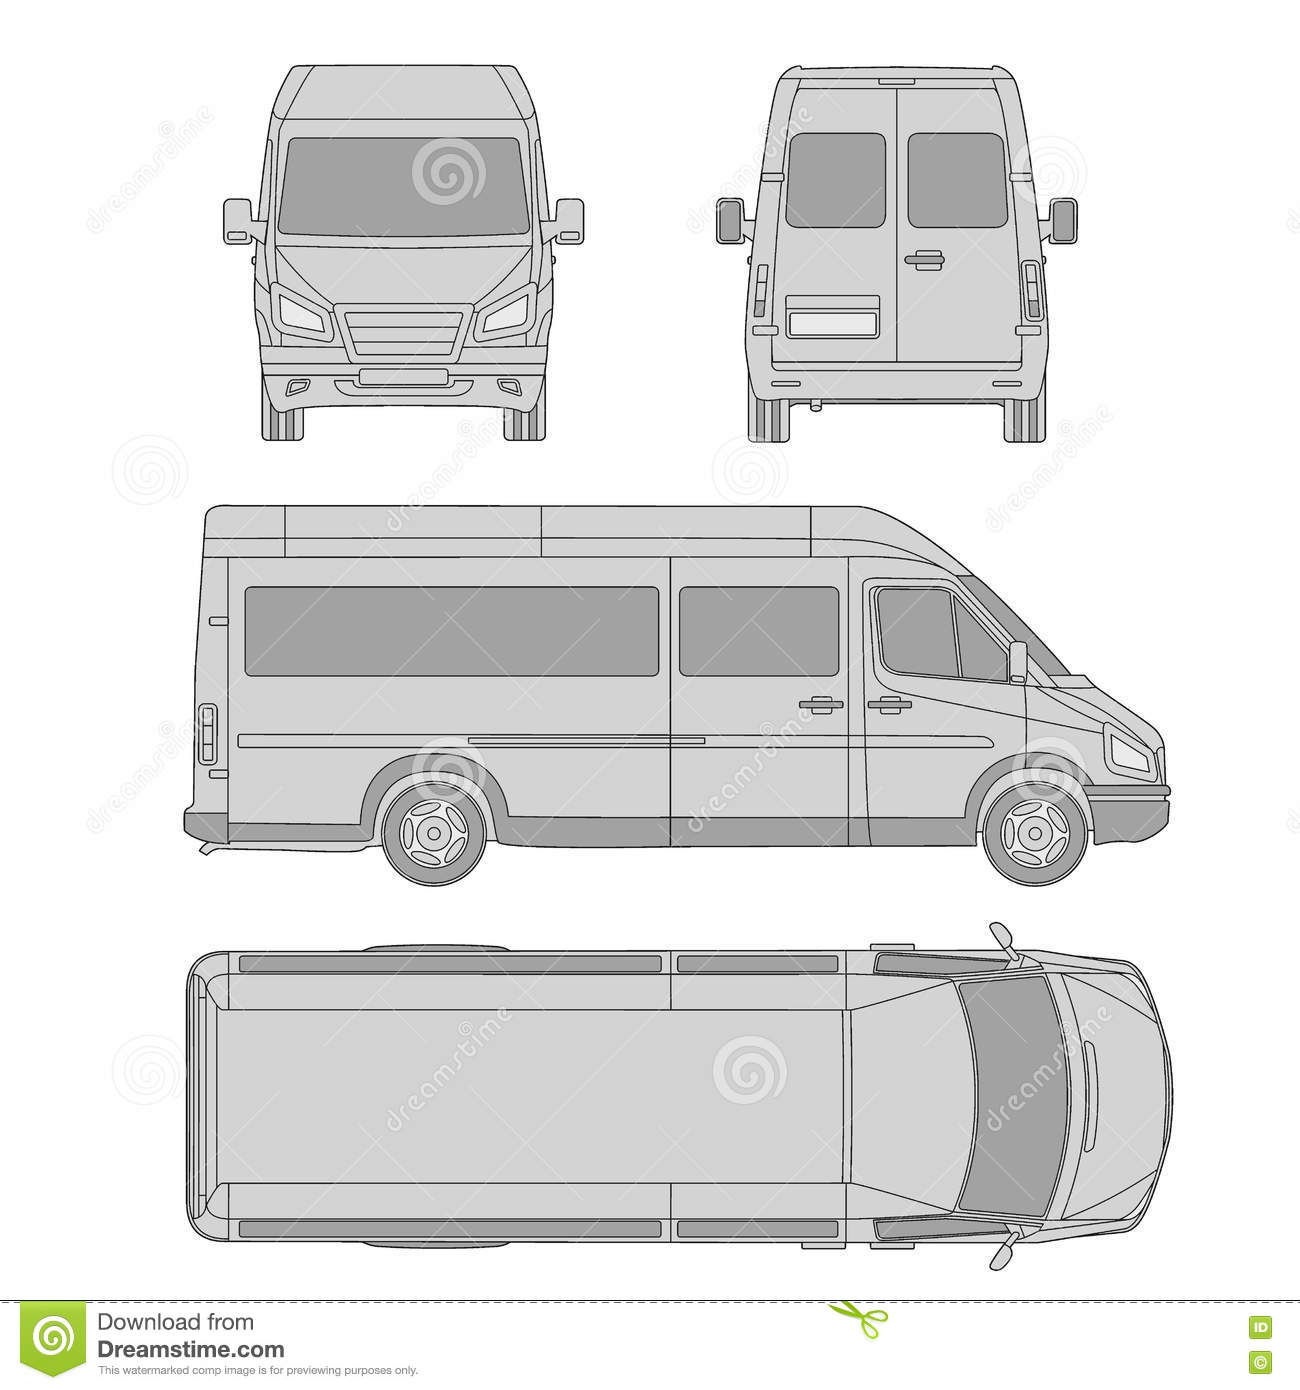 Car template commercial vehicle delivery van blueprint drawing royalty free vector download car template commercial vehicle delivery van blueprint drawing proection malvernweather Images